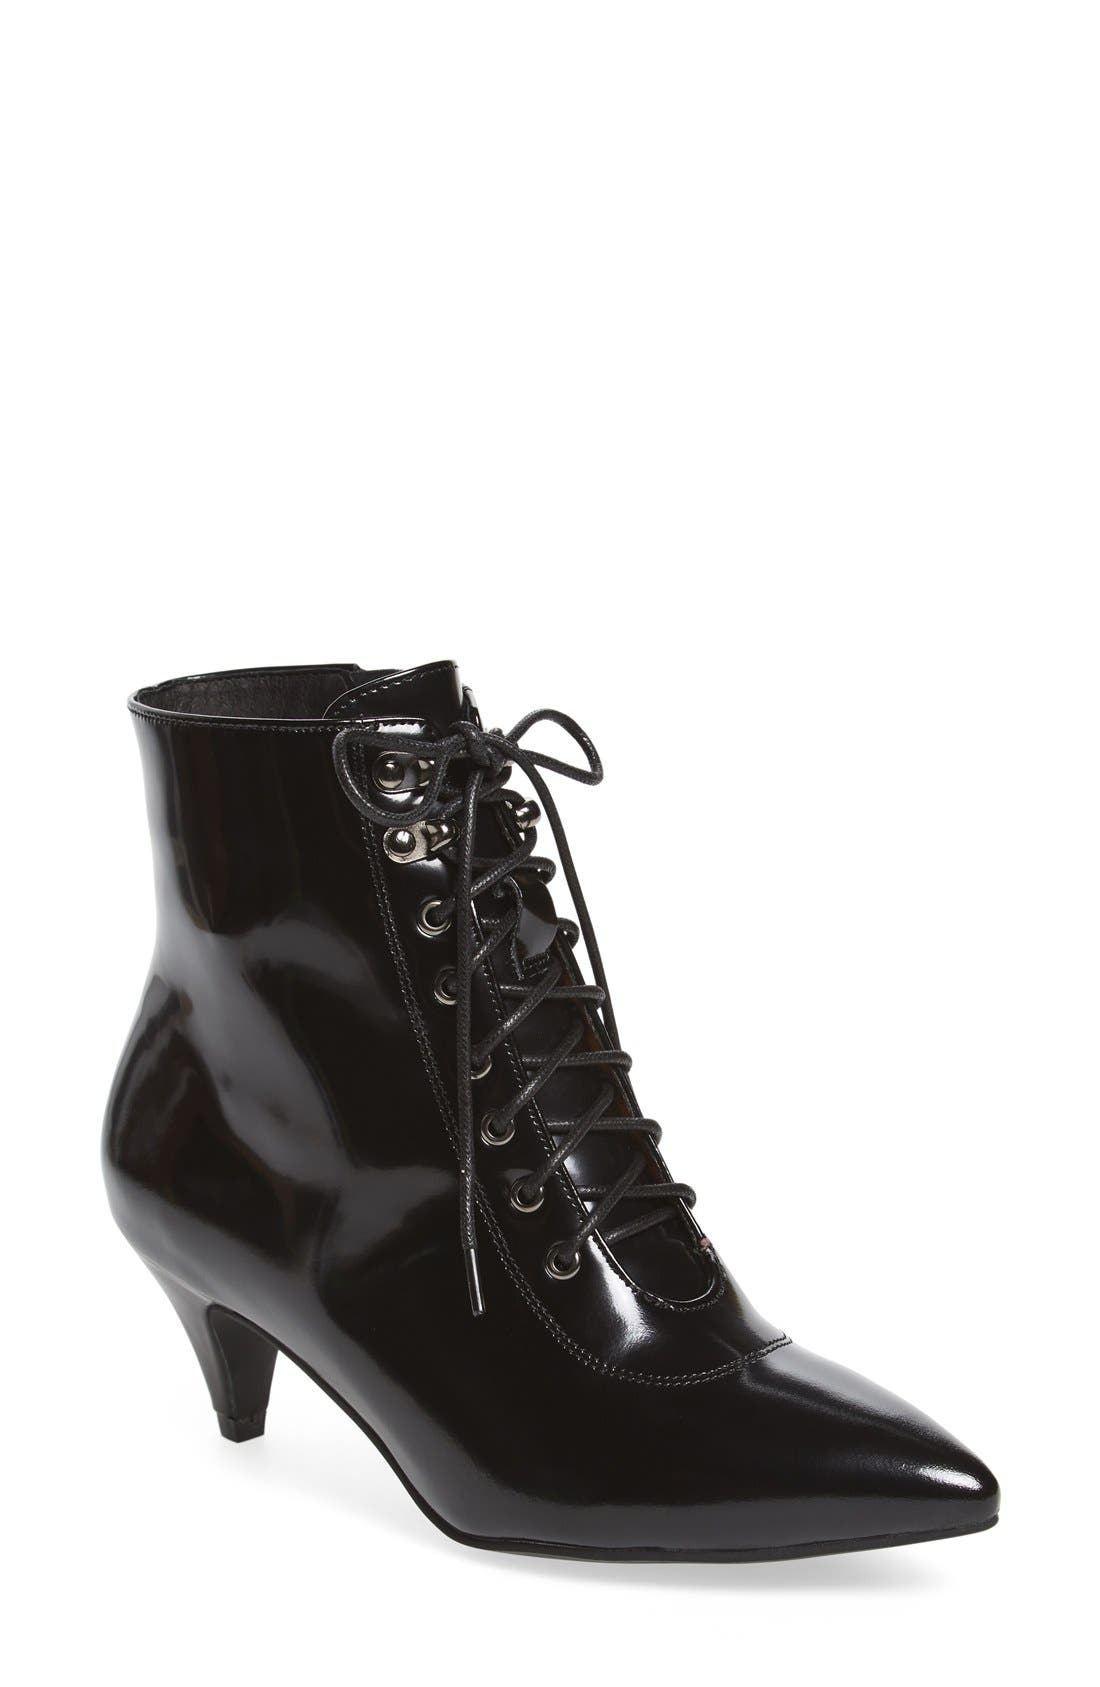 Main Image - Jeffrey Campbell 'Nessarose' Lace-Up Bootie (Women)